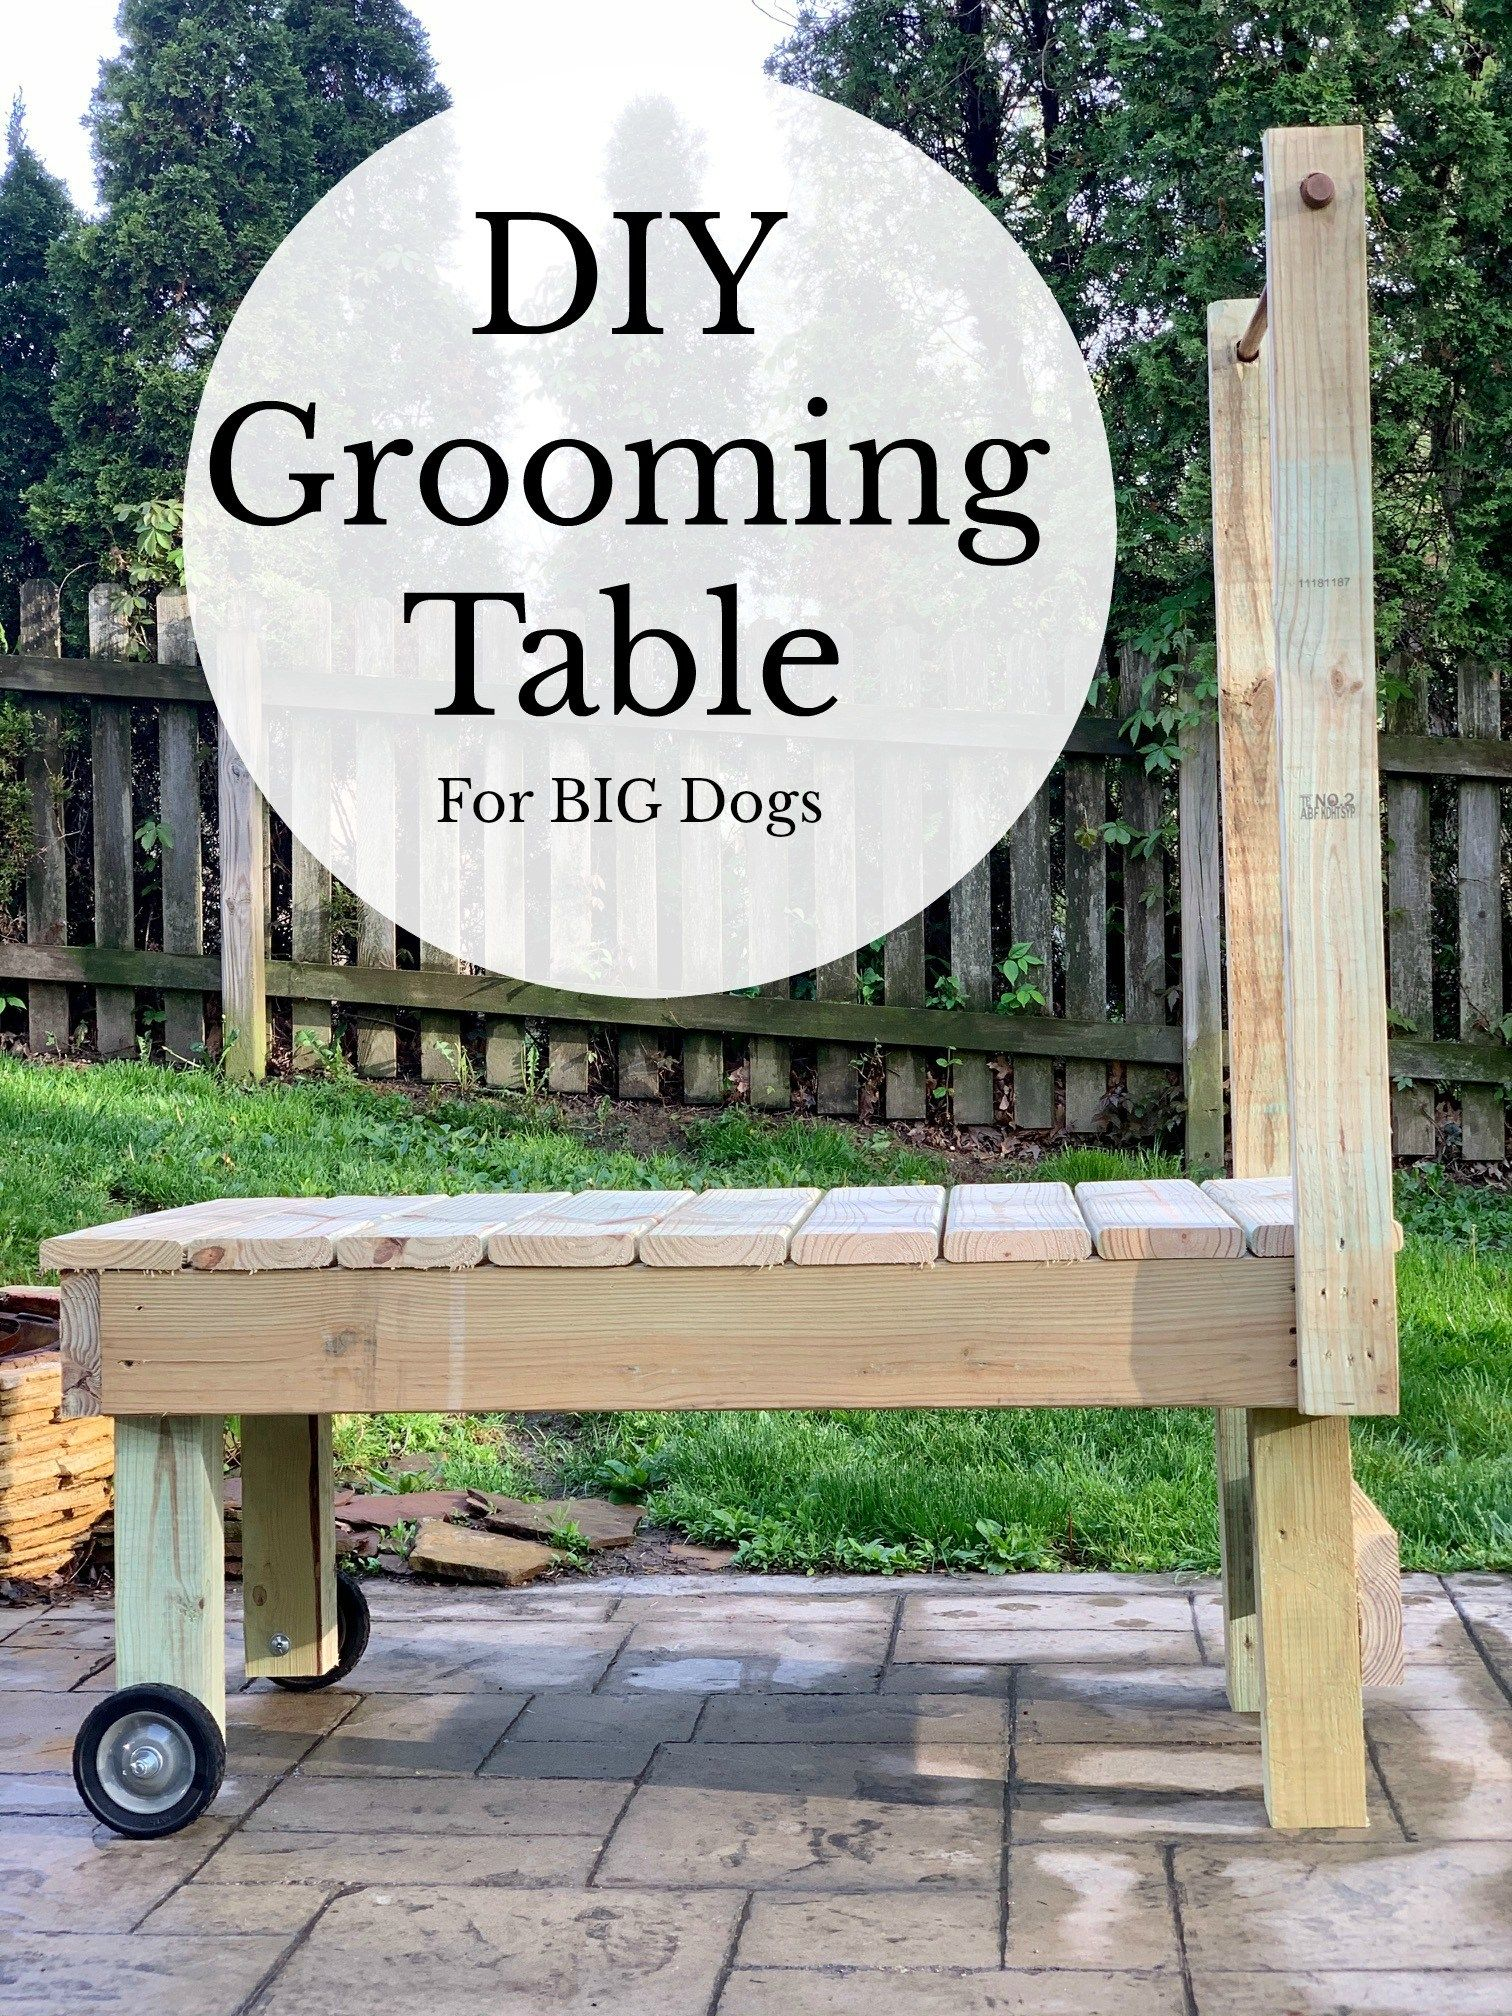 DIY Grooming Table (For Big Dogs) - My Brown Newfies. This DIY grooming table is perfect for big dogs and is easy to make. All the materials were less than $80 and you can customize it any way you want!